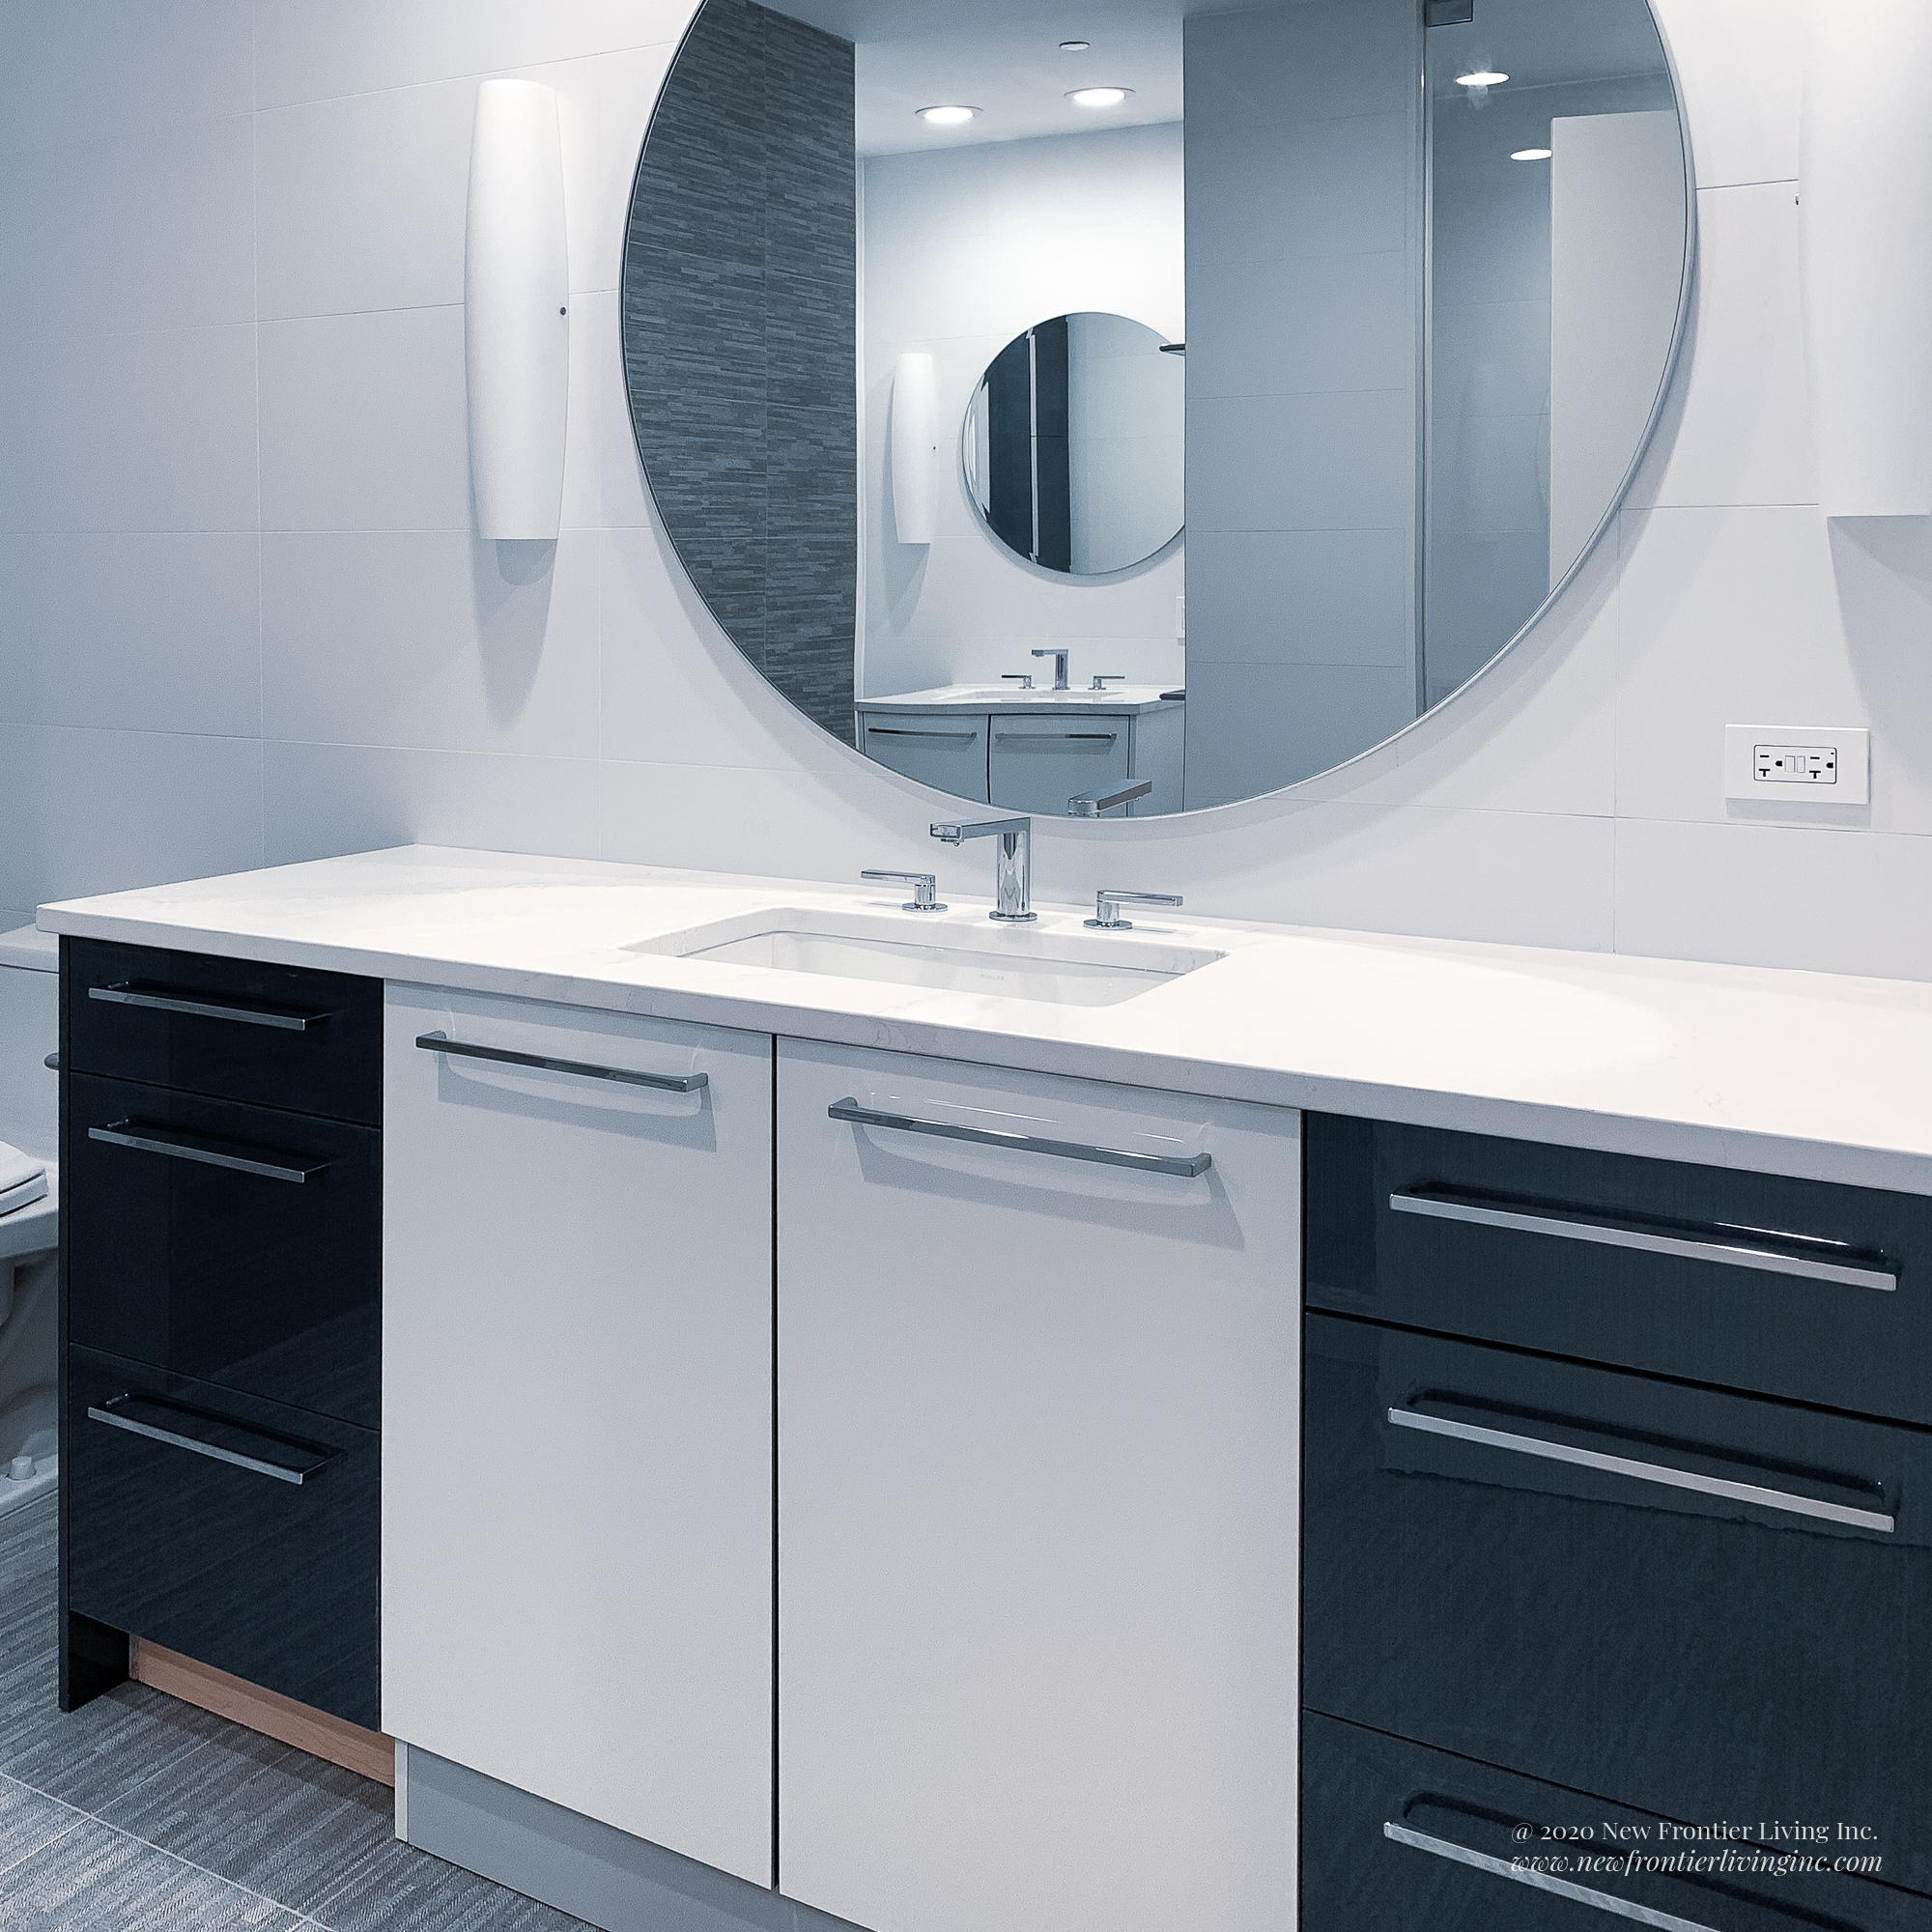 Blue and white bathroom vanity with one sink and mirror and another mirror reflected in a nook